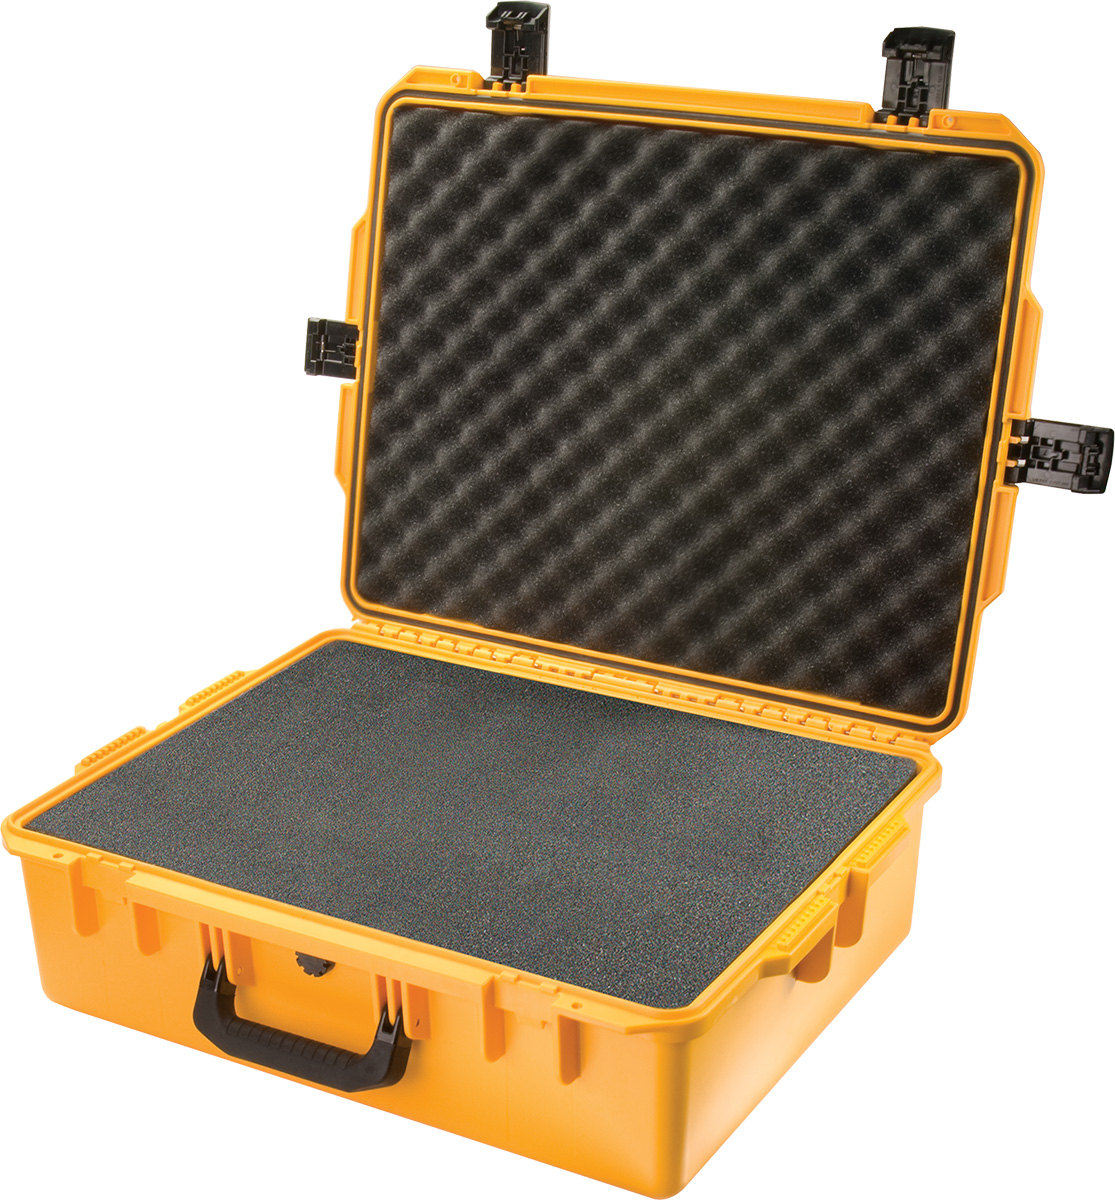 pelican im2700 storm travel hard case